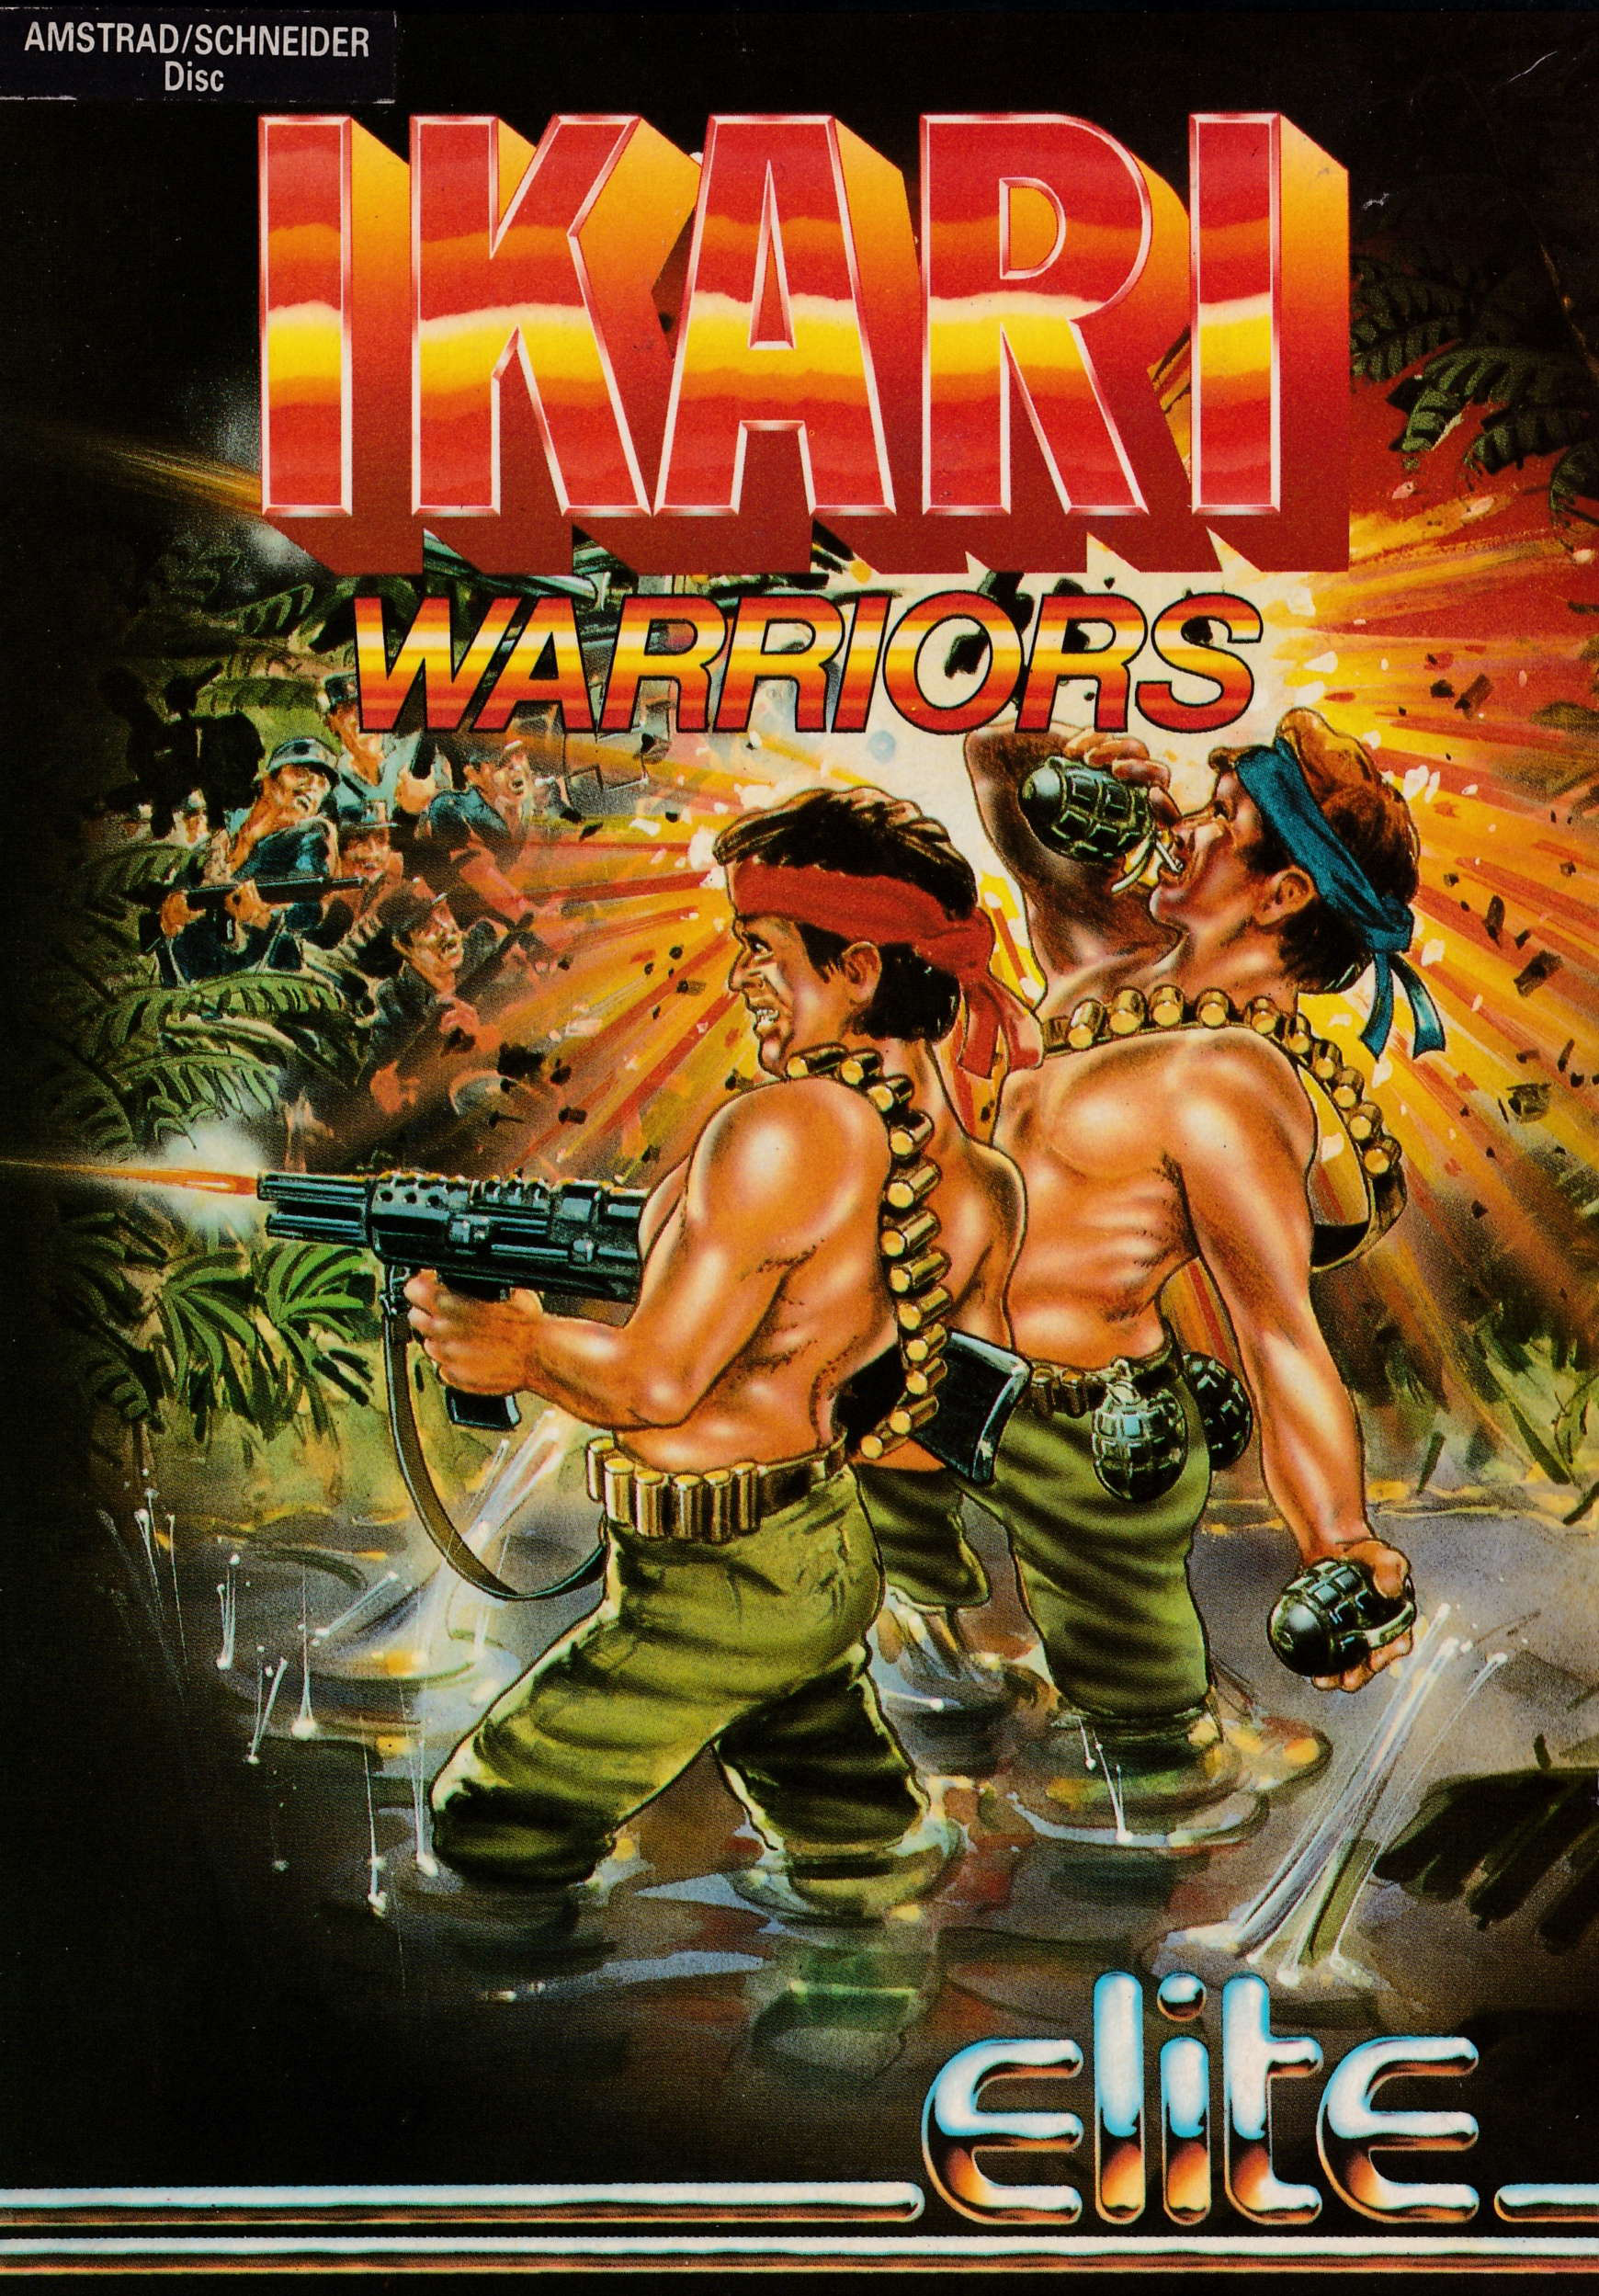 cover of the Amstrad CPC game Ikari Warriors  by GameBase CPC